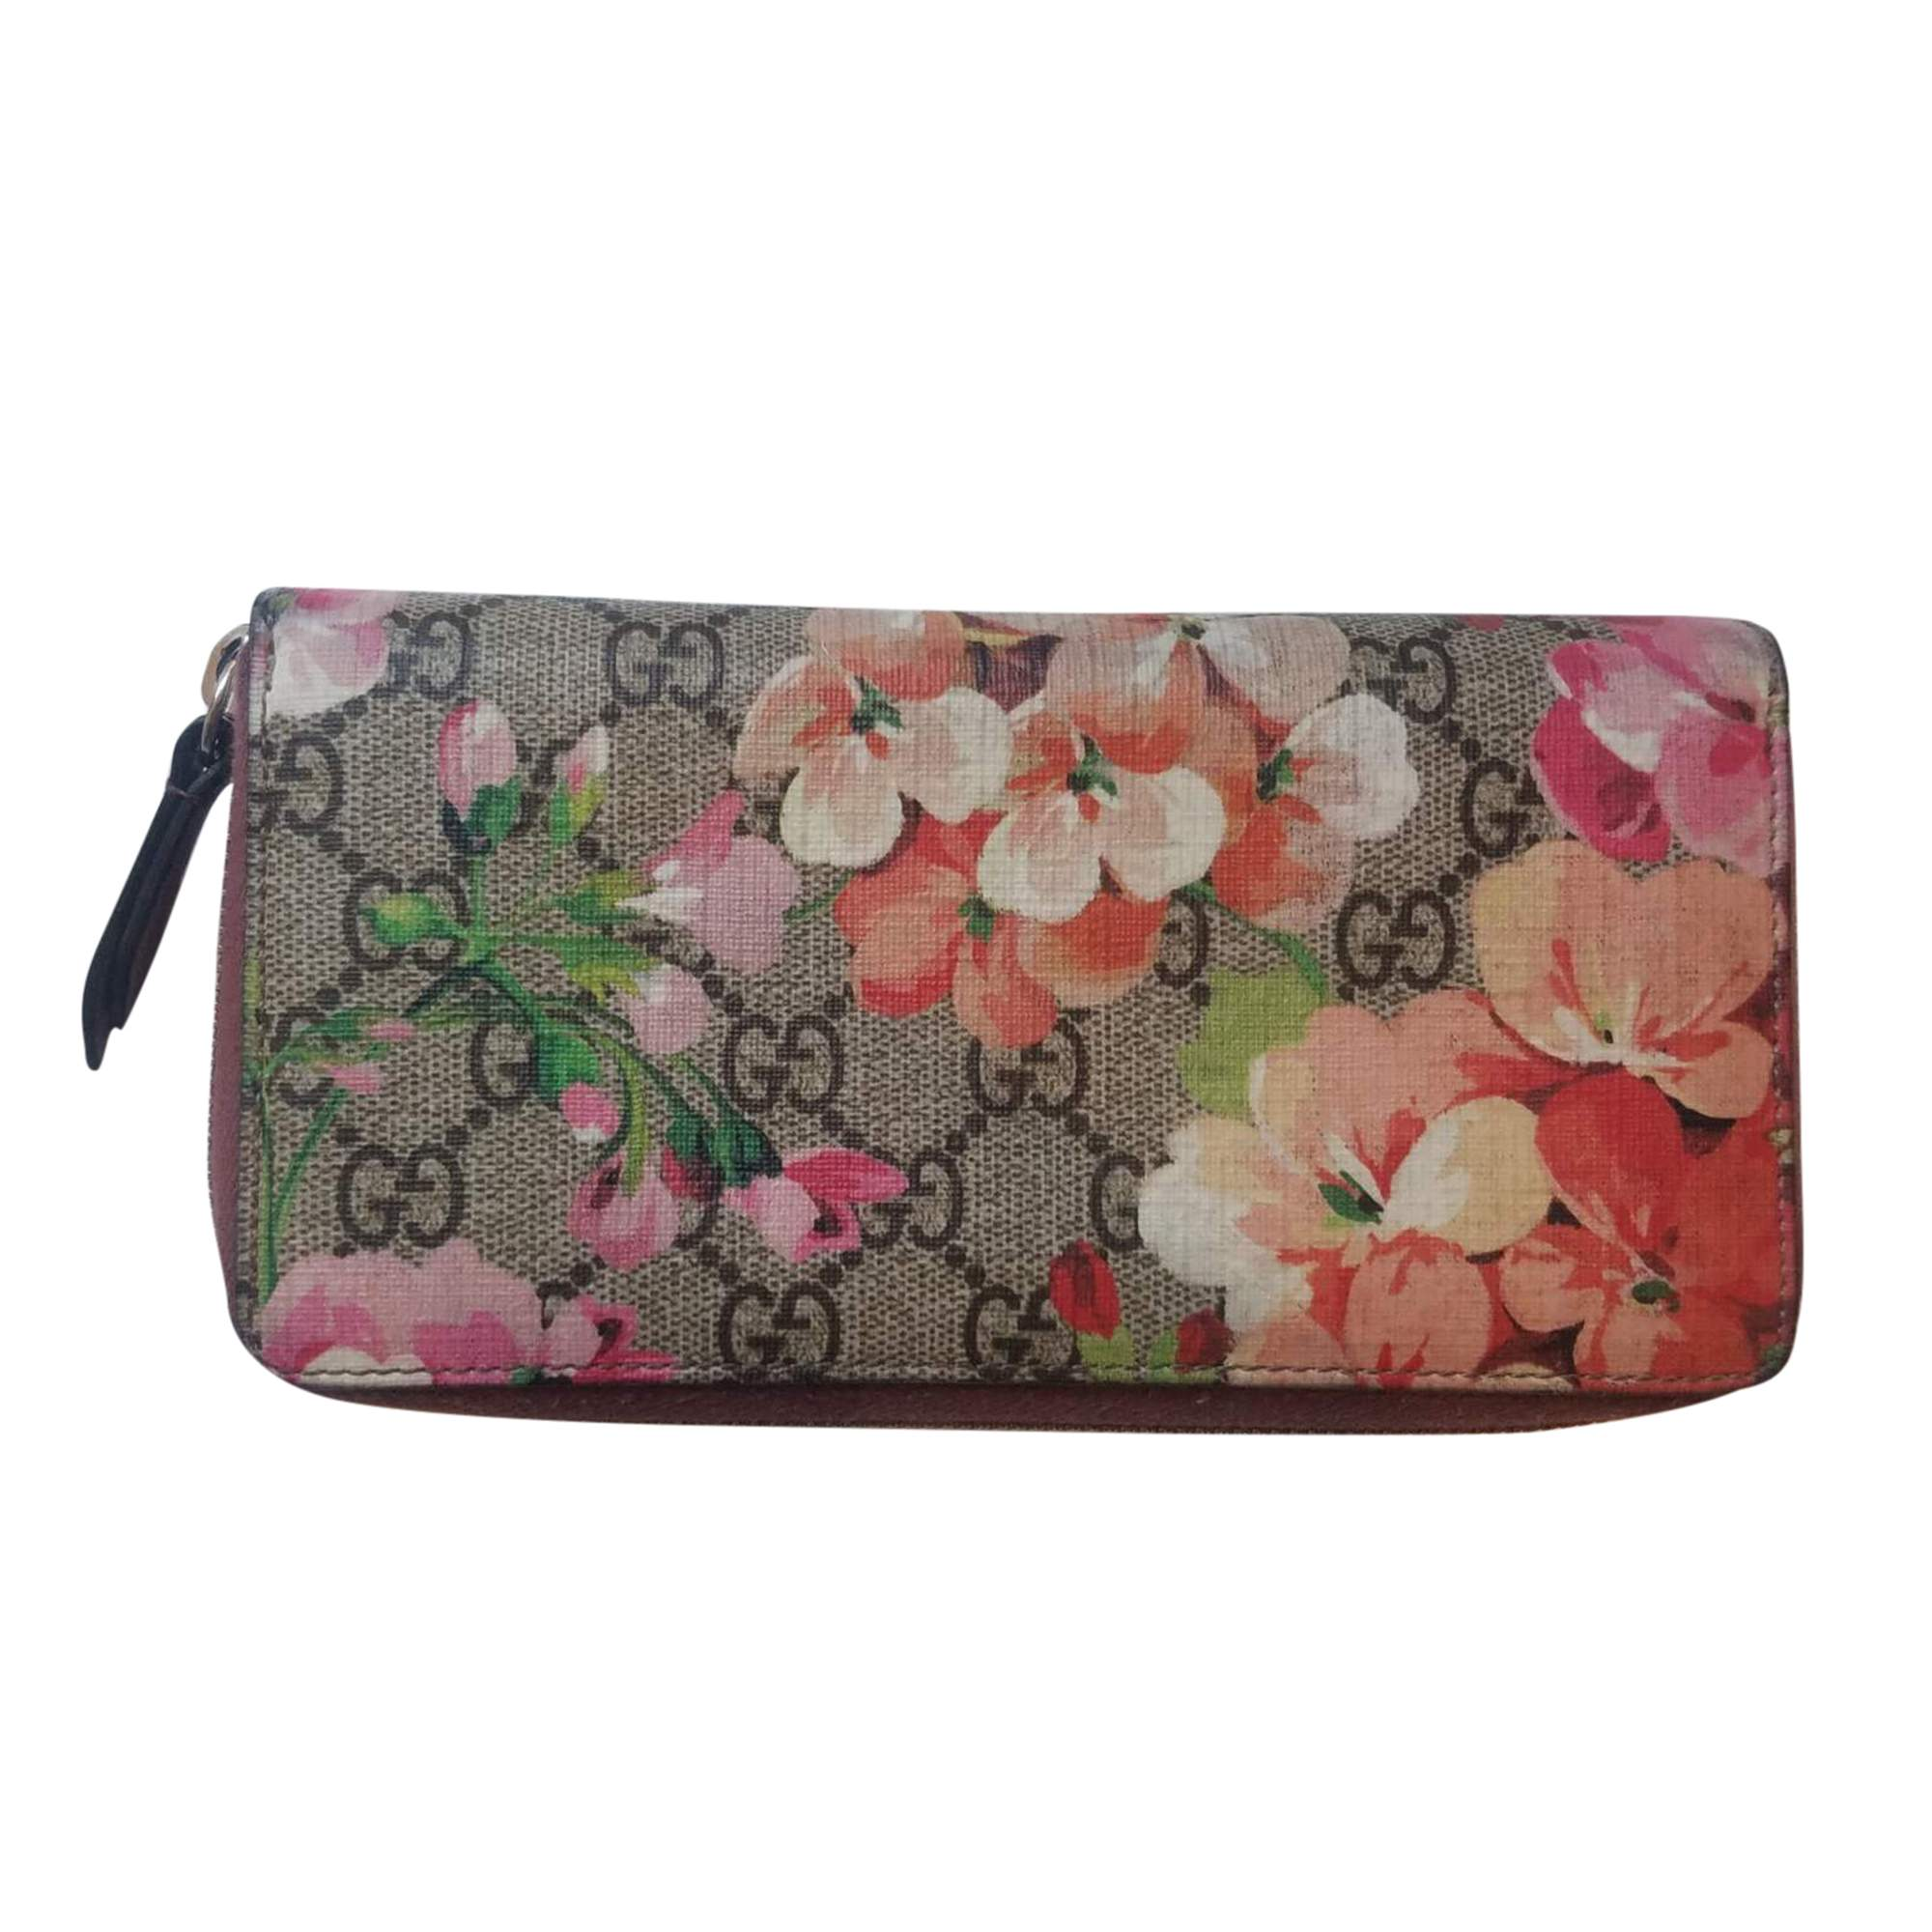 Gucci Monogram Floral Zip Wallet The Chic Selection